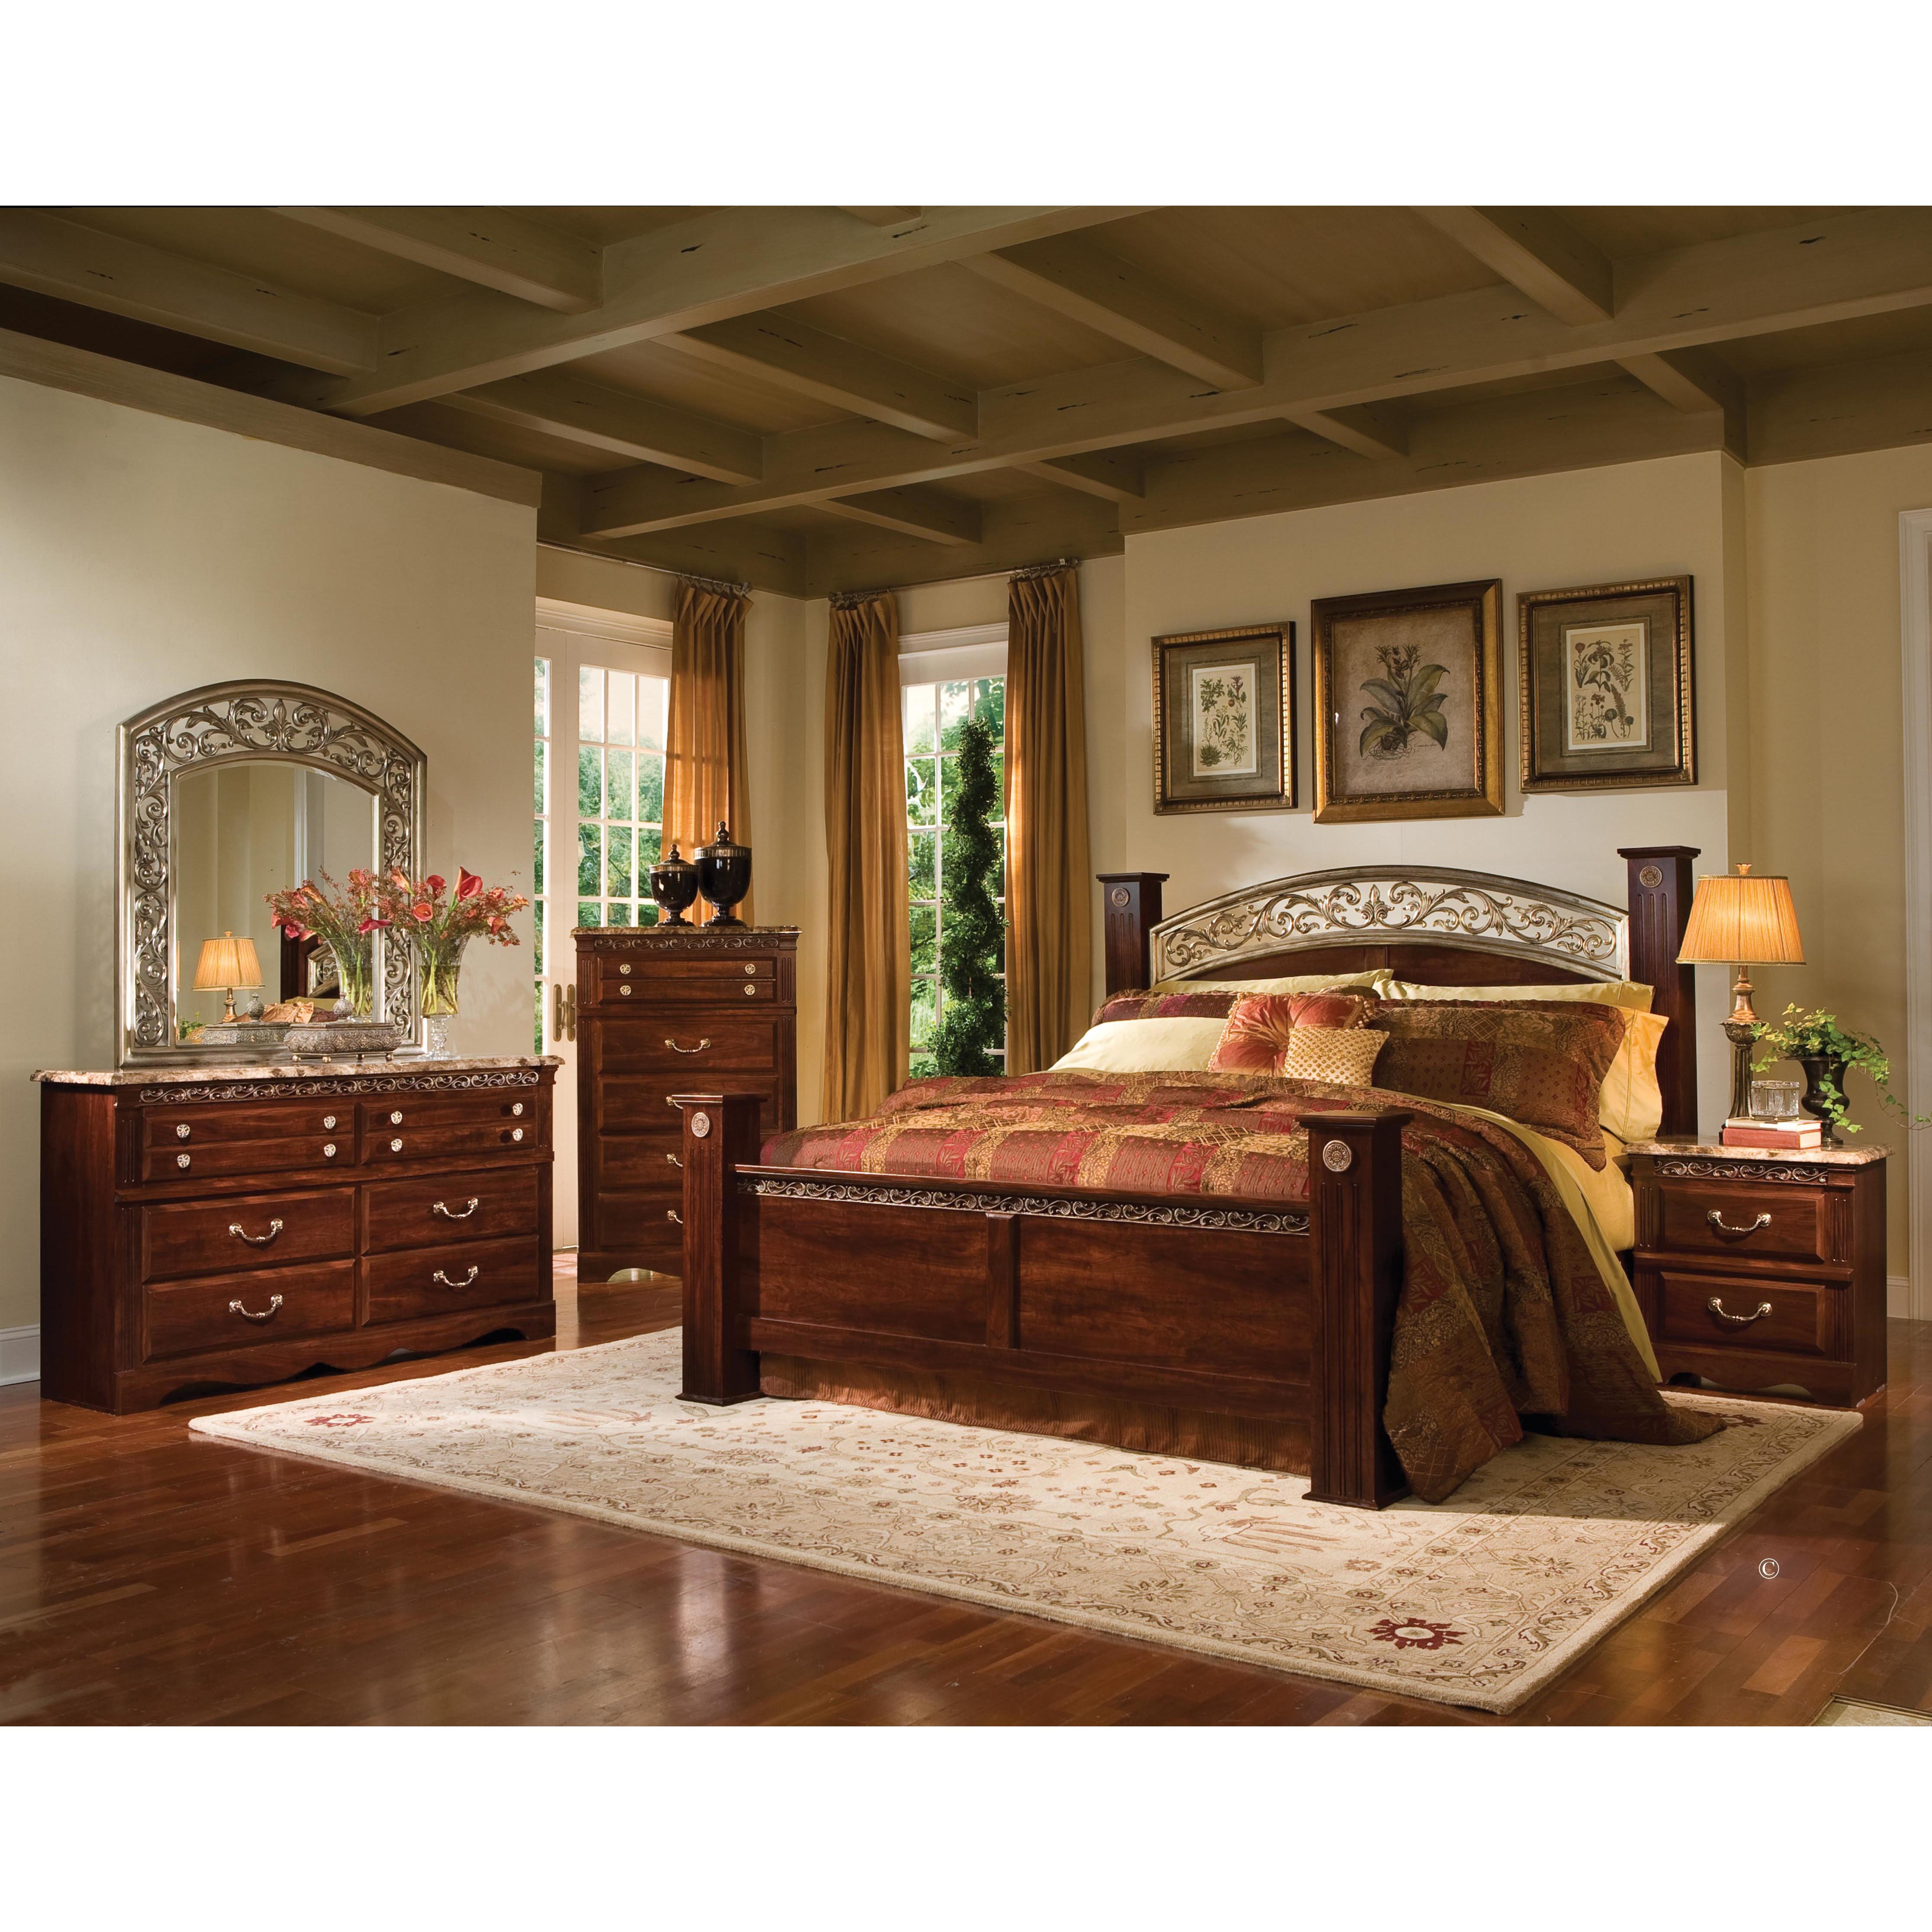 Best ideas about Wayfair Bedroom Sets . Save or Pin Astoria Grand Augill Panel Customizable Bedroom Set Now.